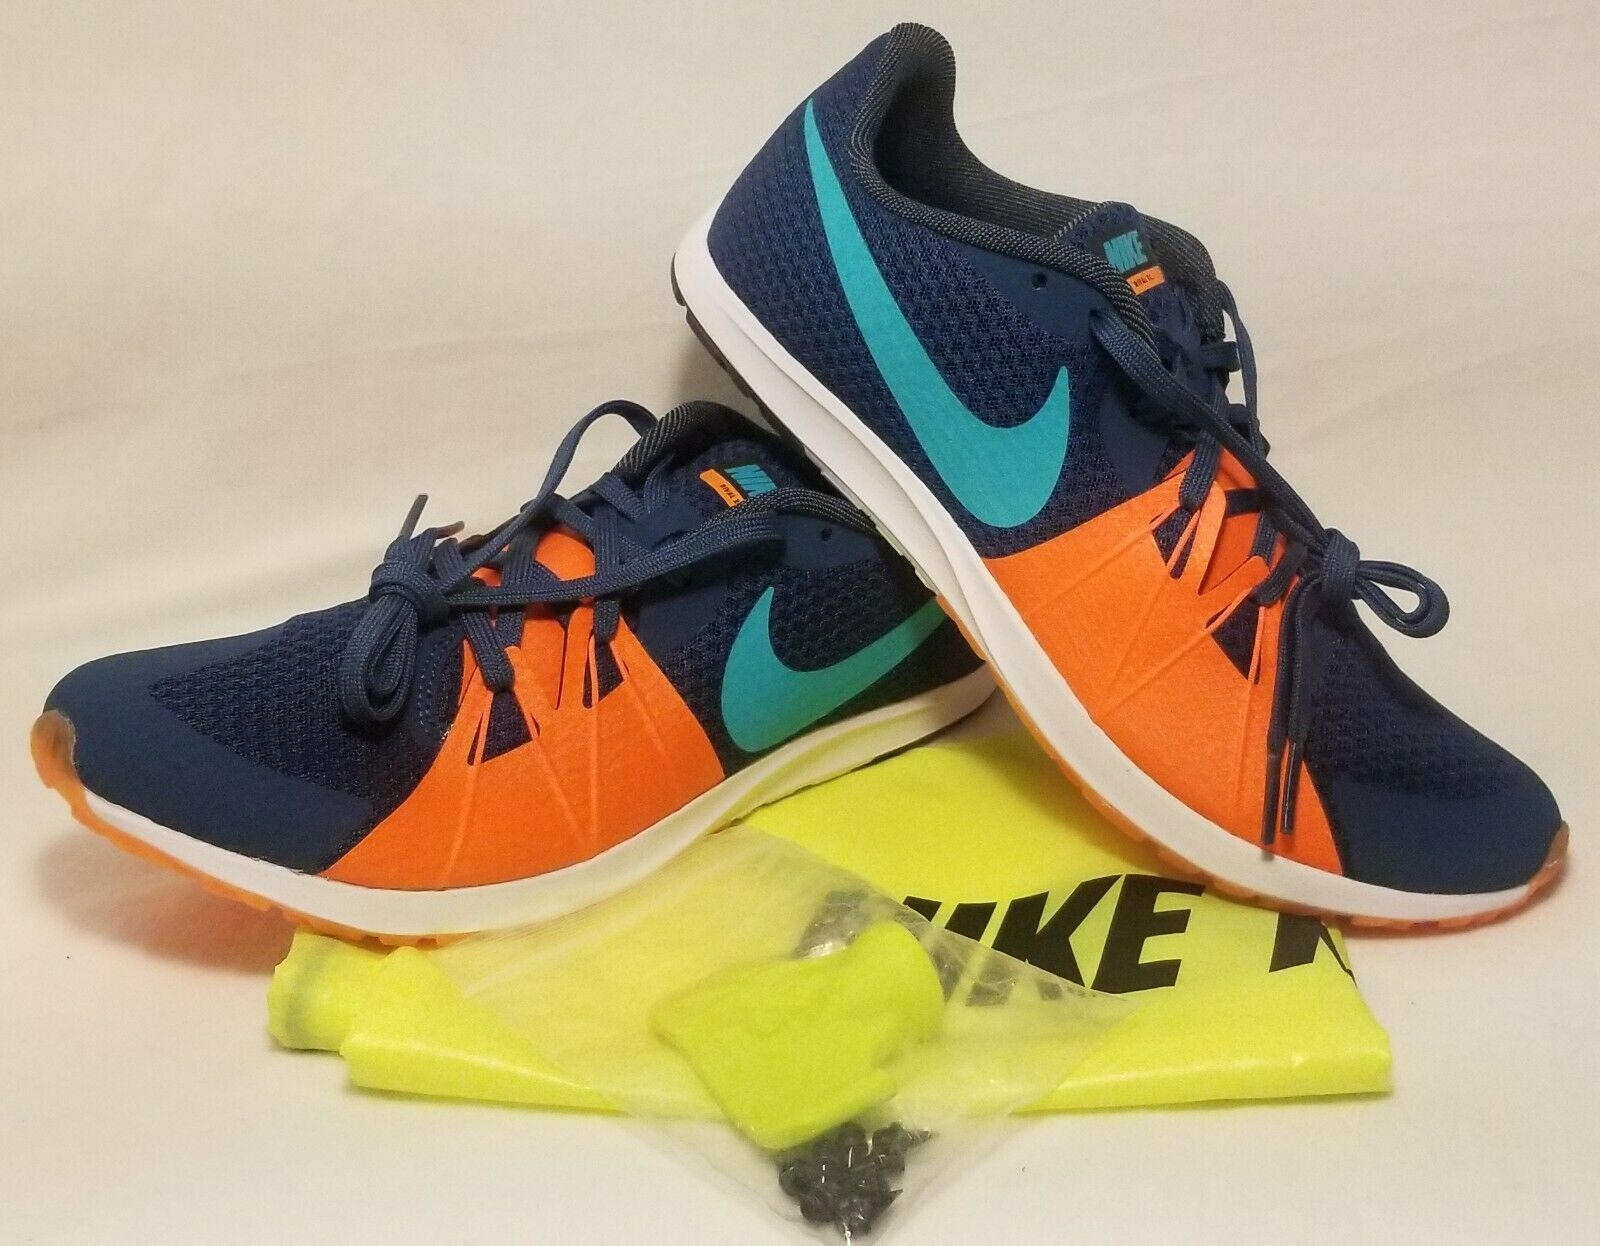 NIKE Zoom Rival XC Spikes Cross Country Spikes 904718-438 Men's Size 8